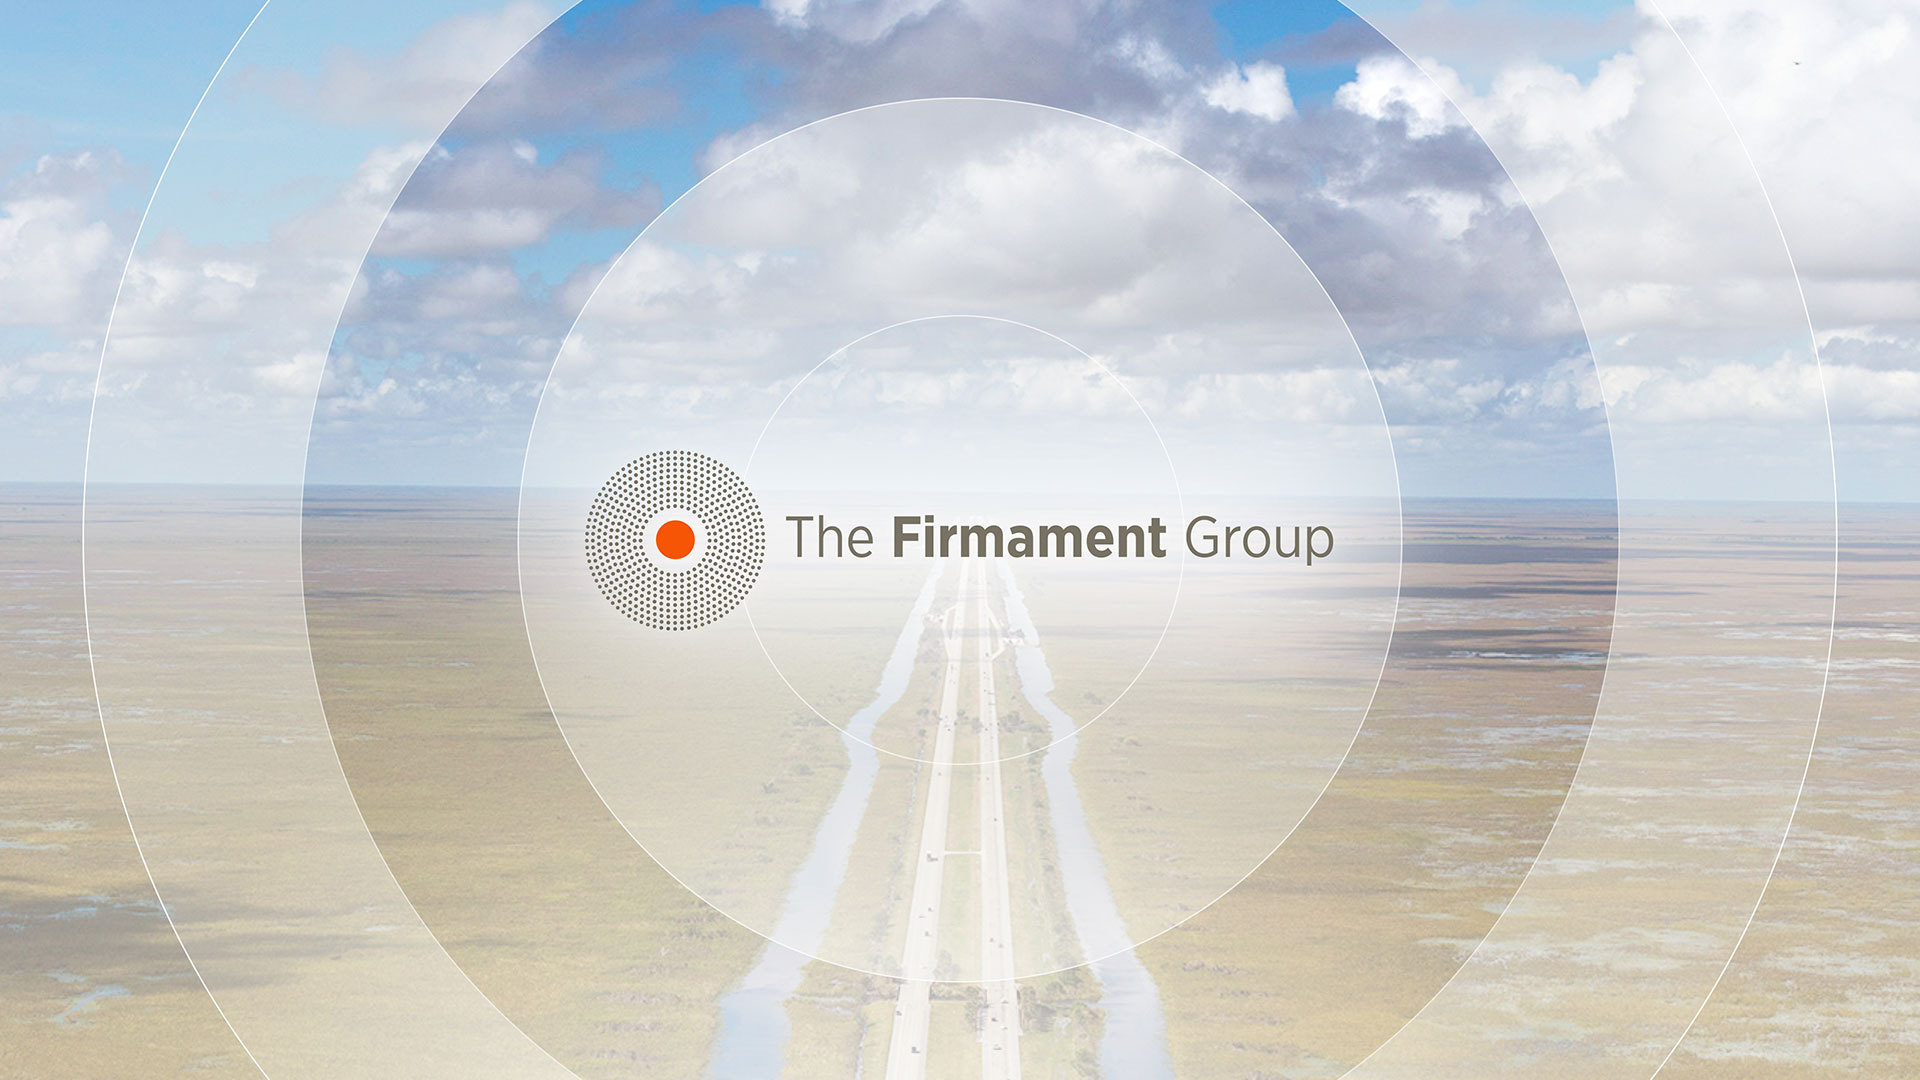 The Firmament Group